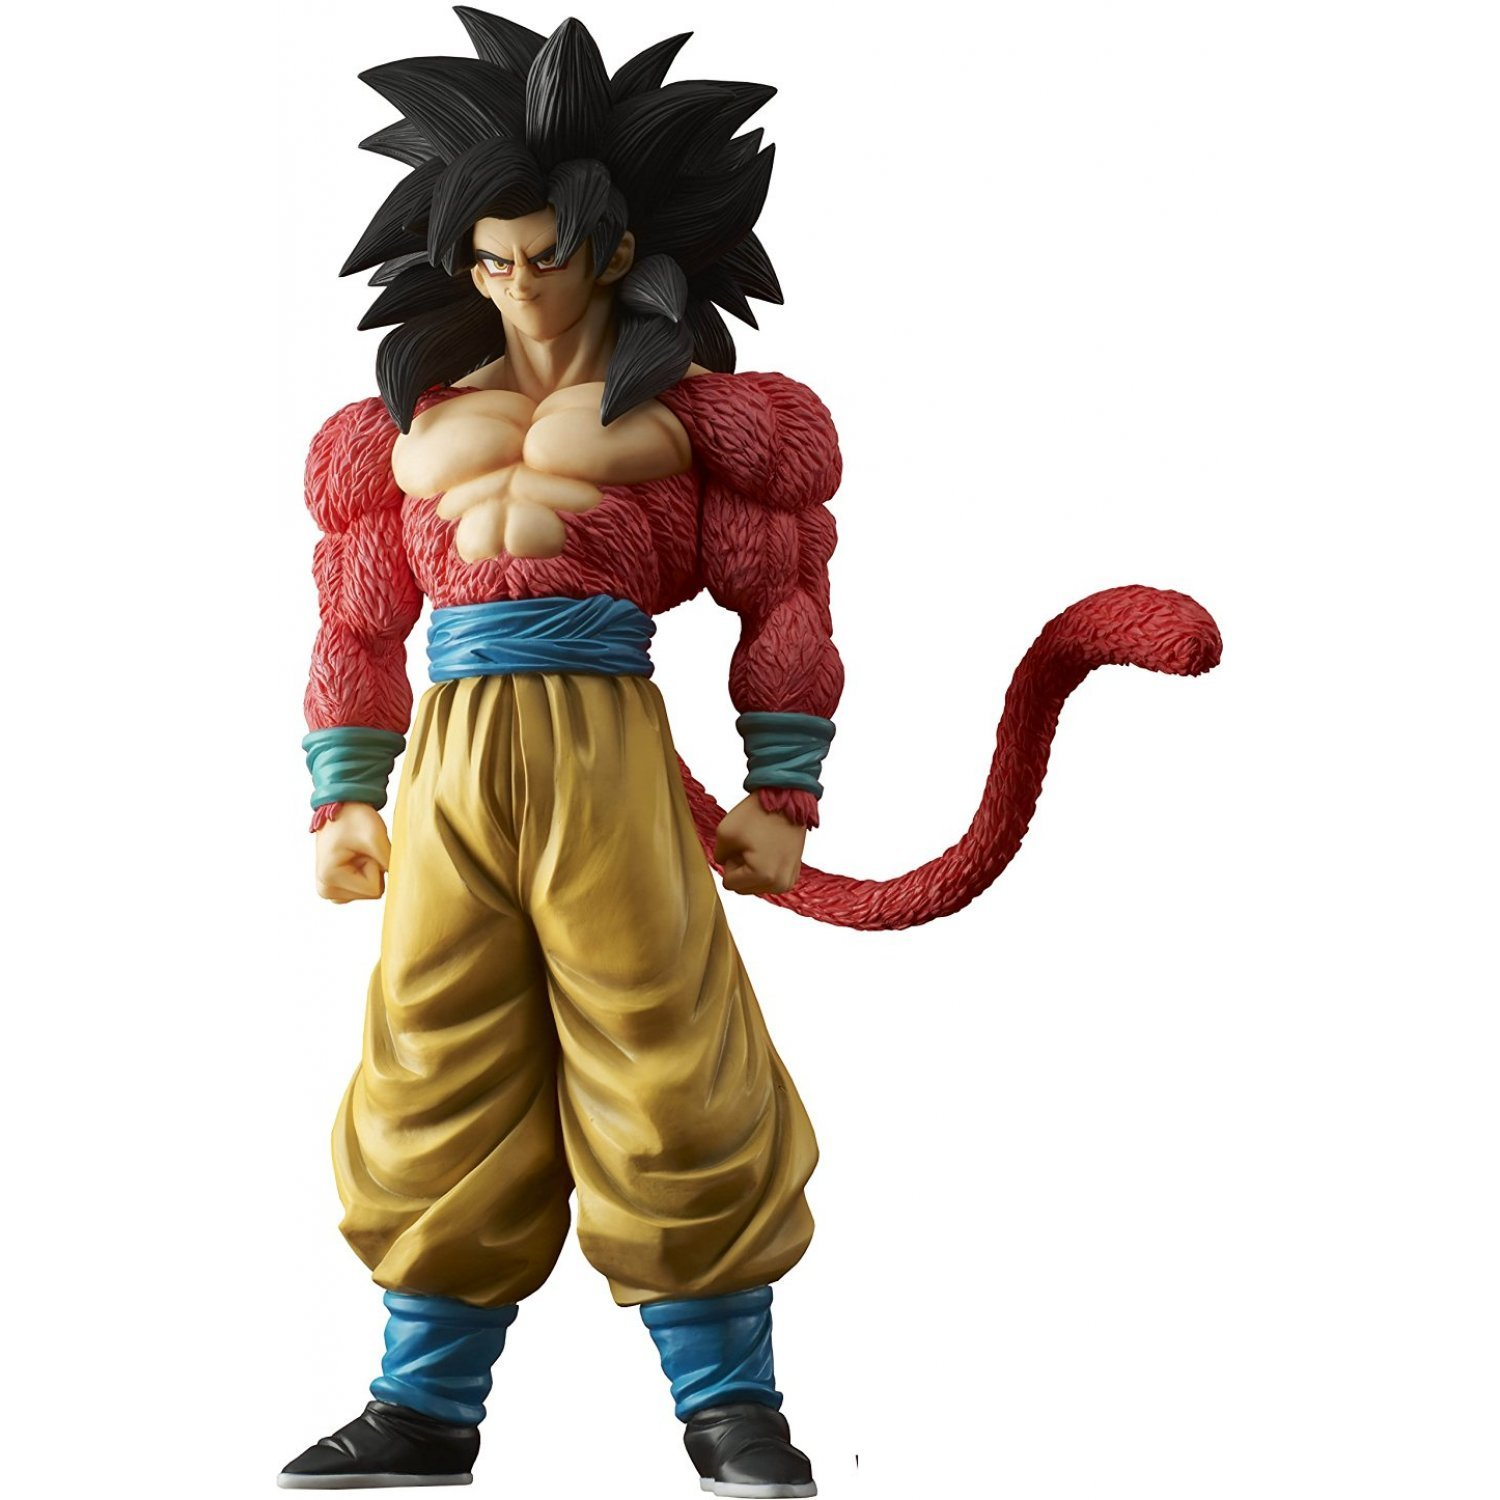 Dragon ball gt gigantic series son goku super saiyan 4 - Son gohan super saiyan 4 ...